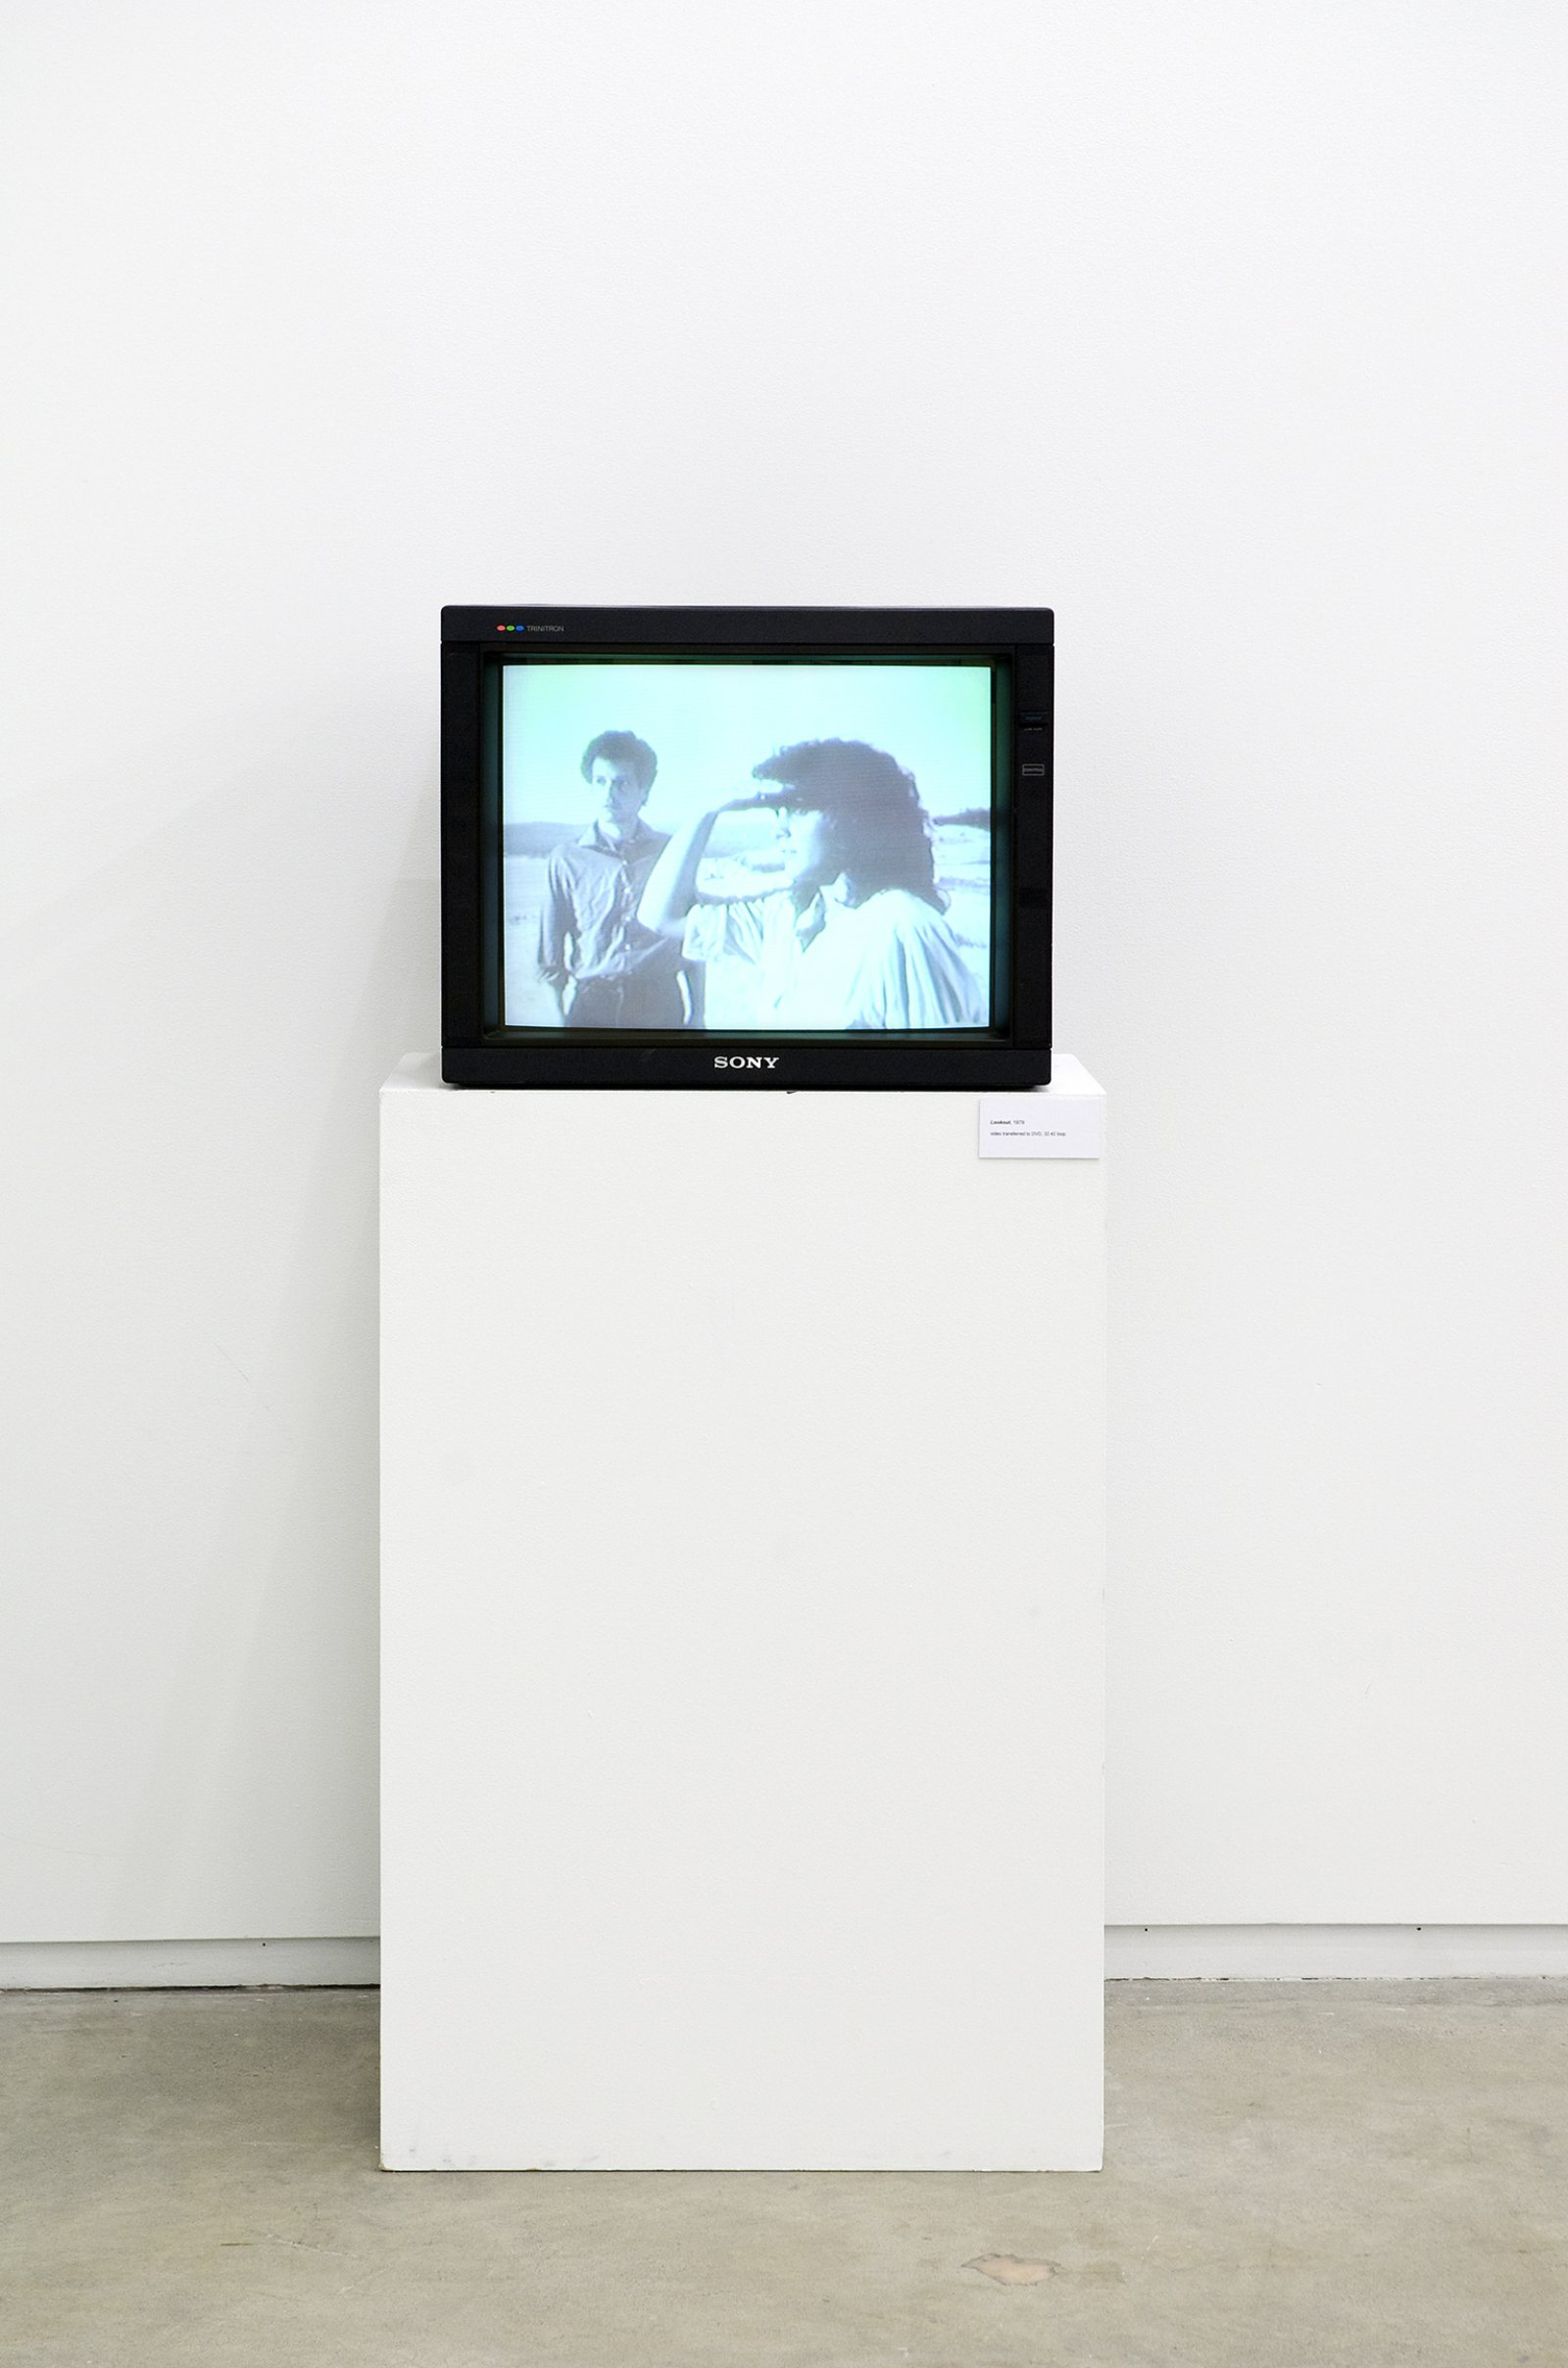 Ian Wallace, Lookout, 1979, 3/4 inch video transferred to DVD, 32 minutes, 42 seconds looped by Ian Wallace